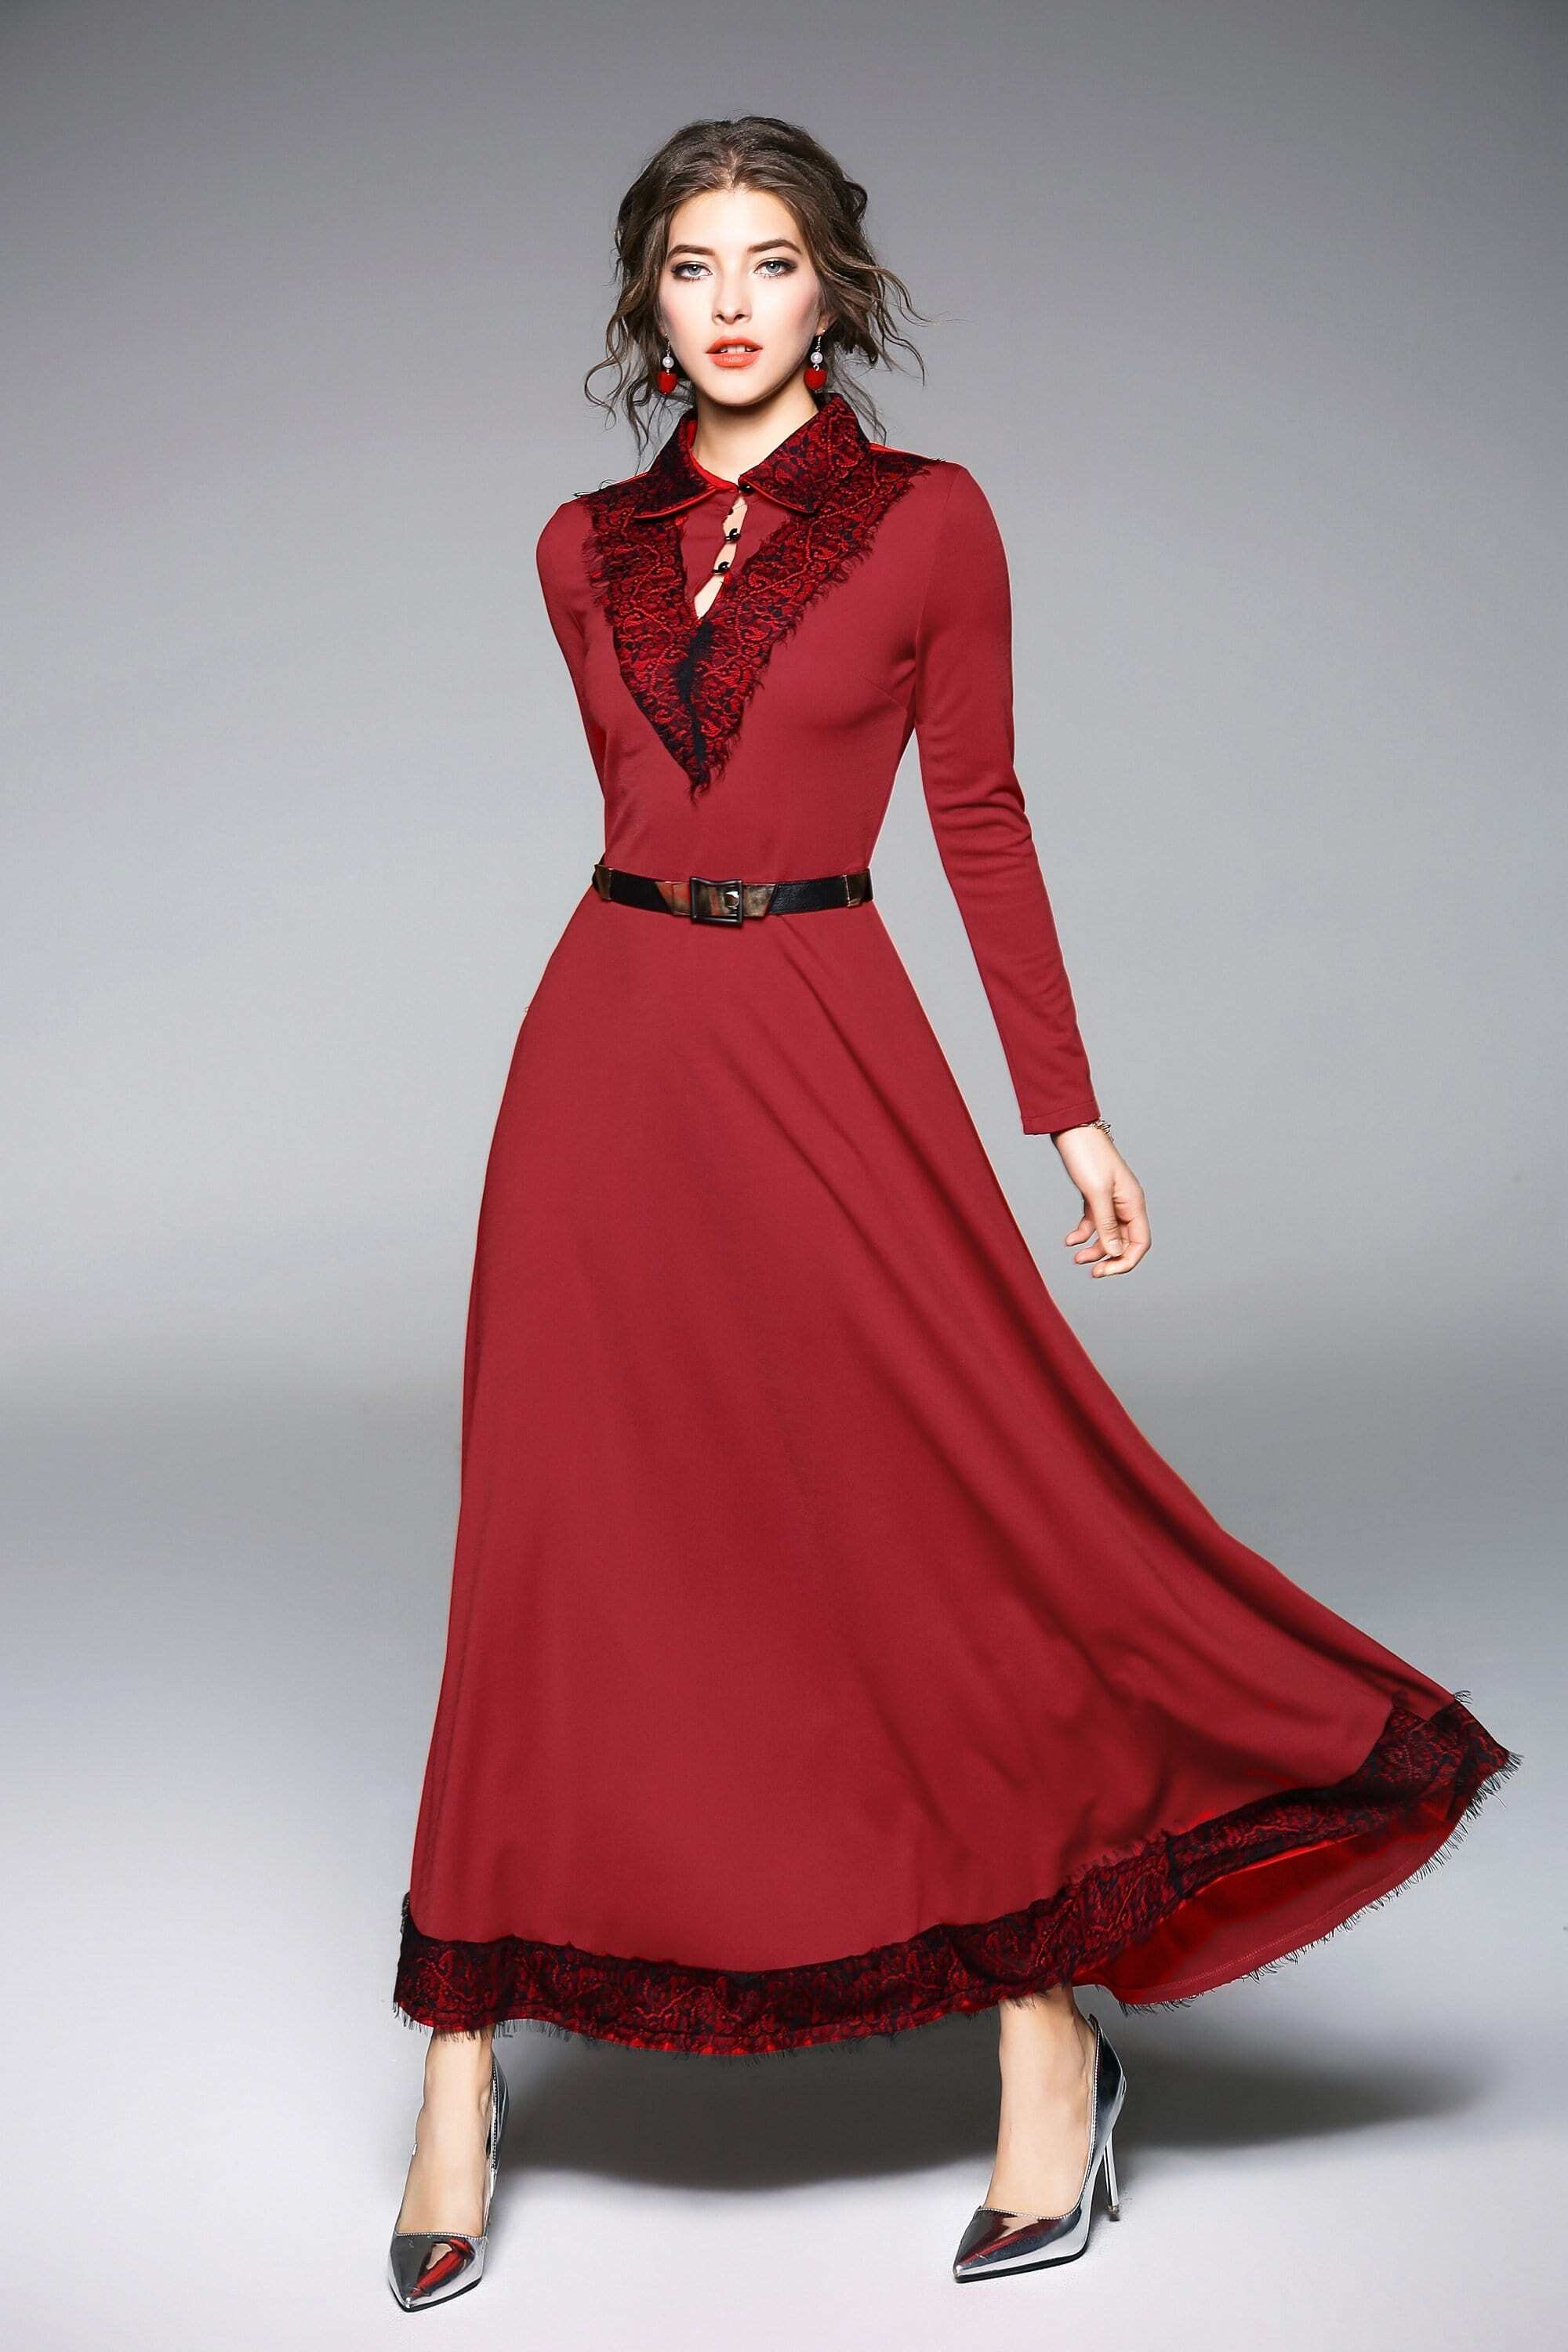 Lace Contrast Button Front Dress contrast collar foldover front dress